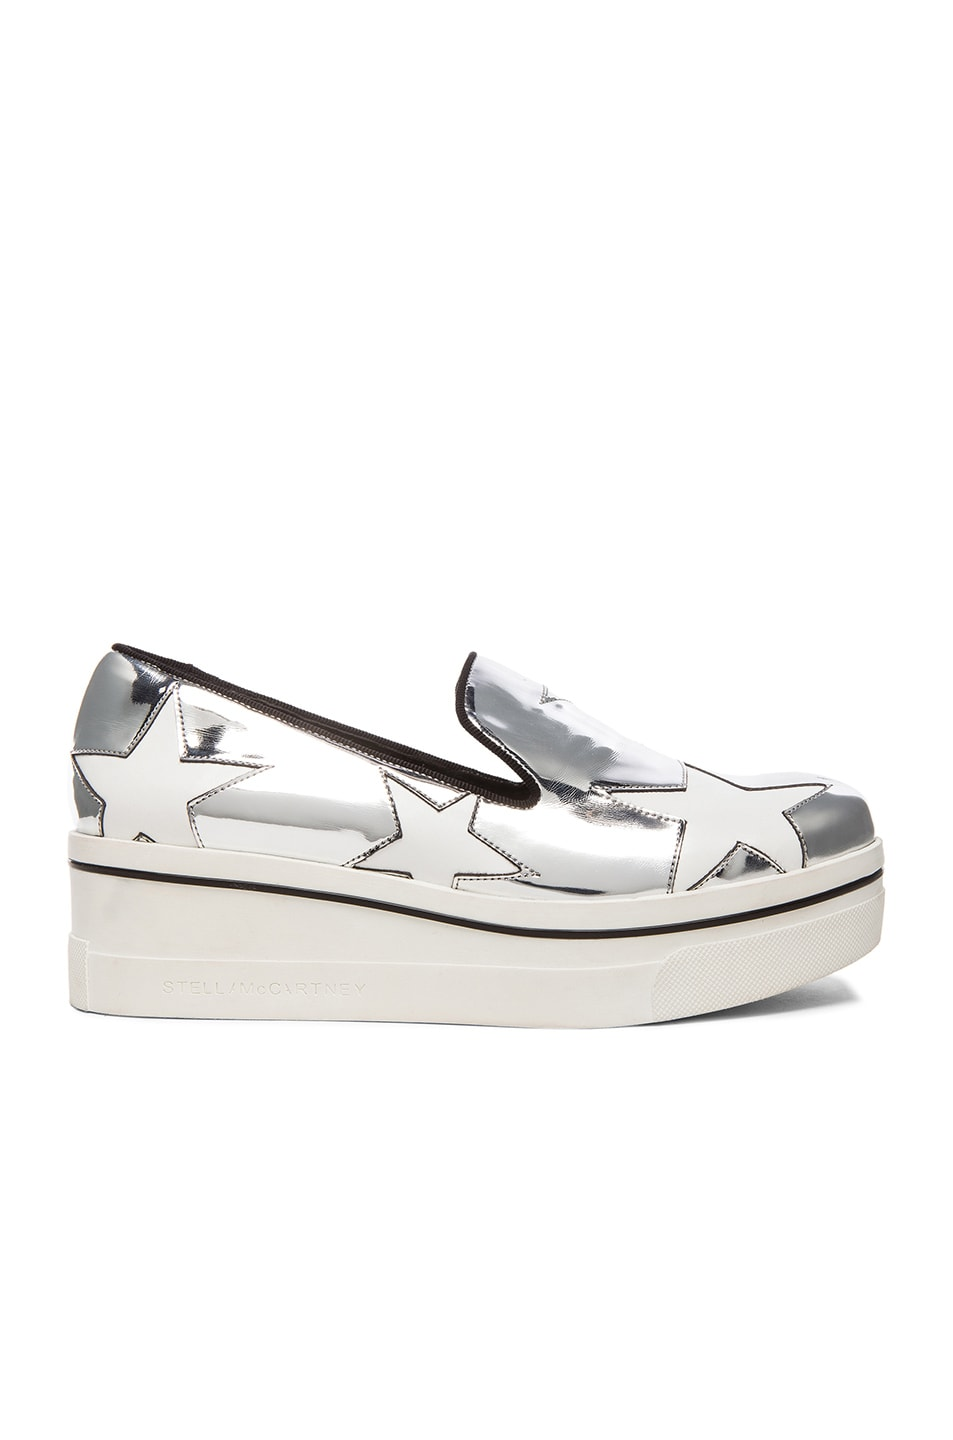 Image 1 of Stella McCartneyBinx Star Platform Shoes in Indium, Black & White